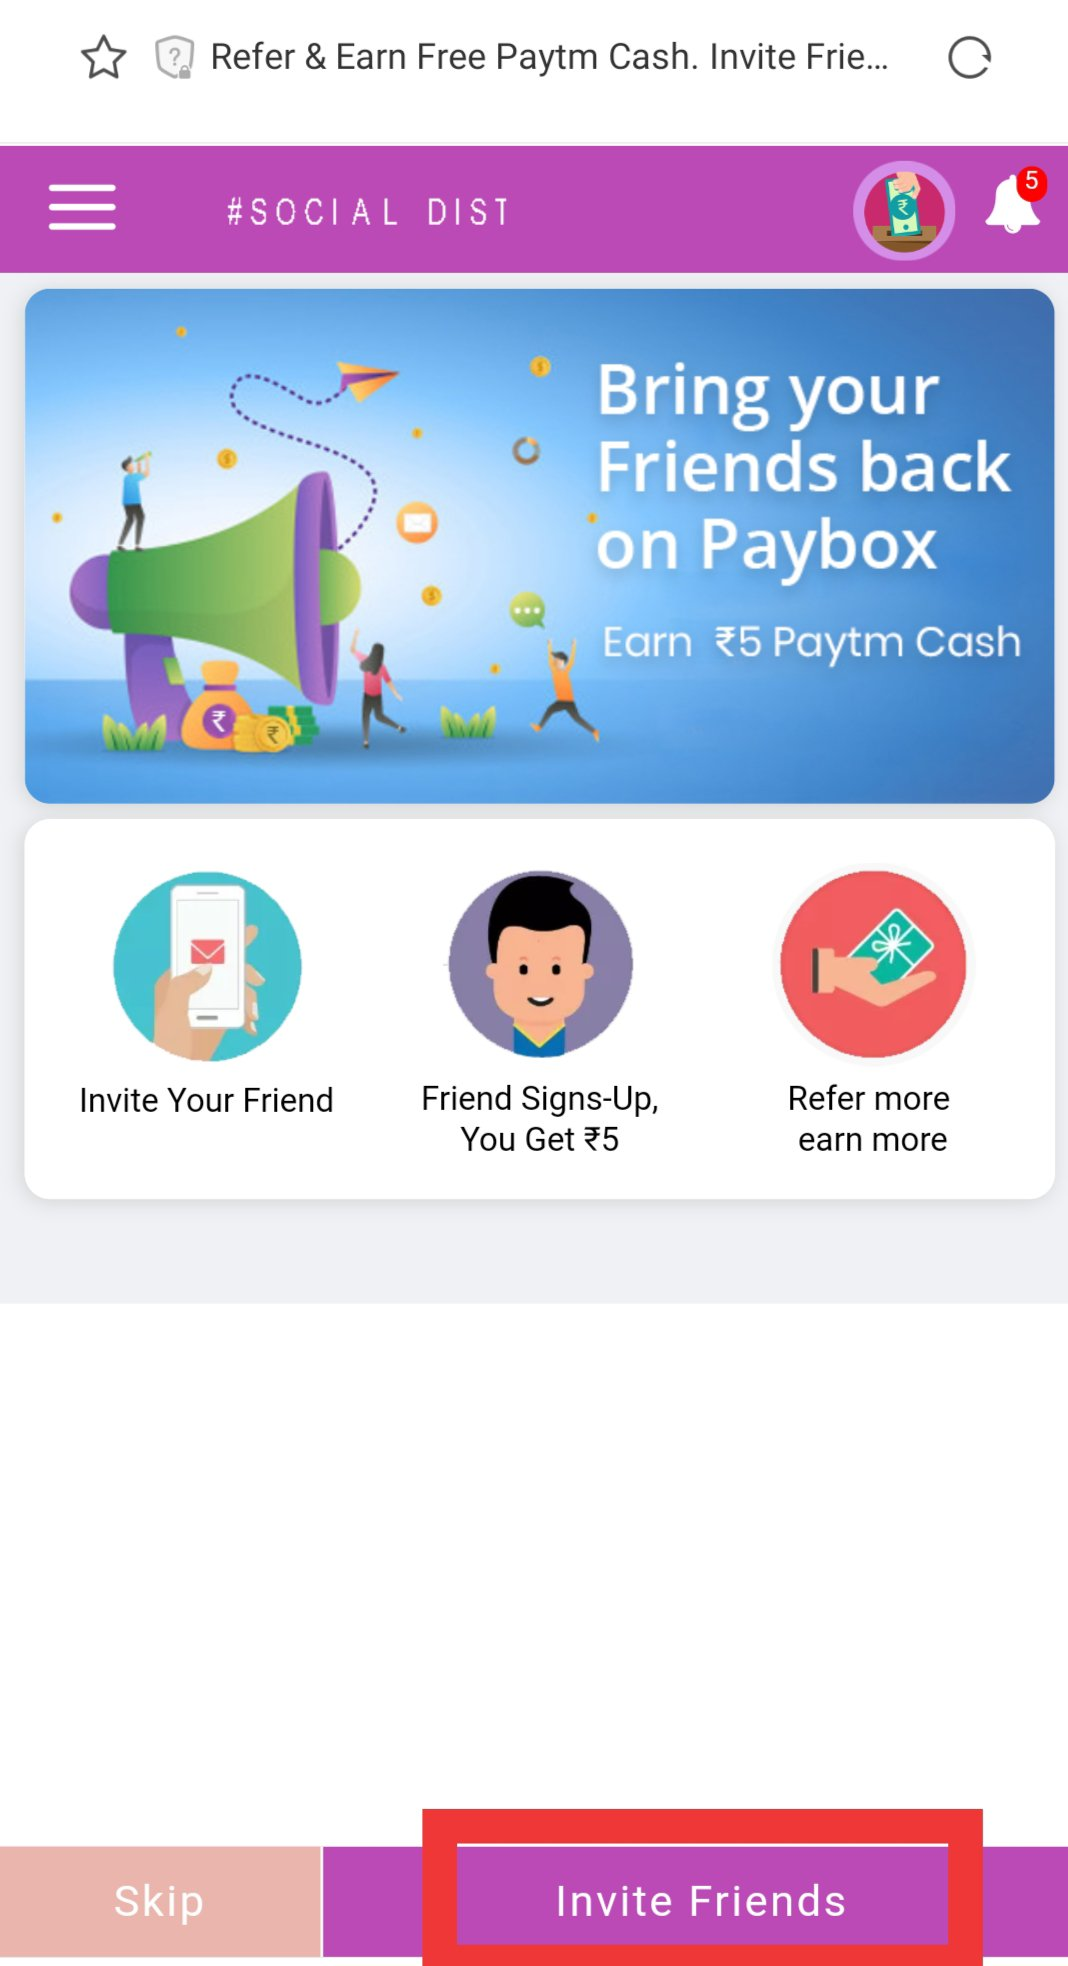 Paybox Refer and Earn Offer | Paybox Login | Paybox App